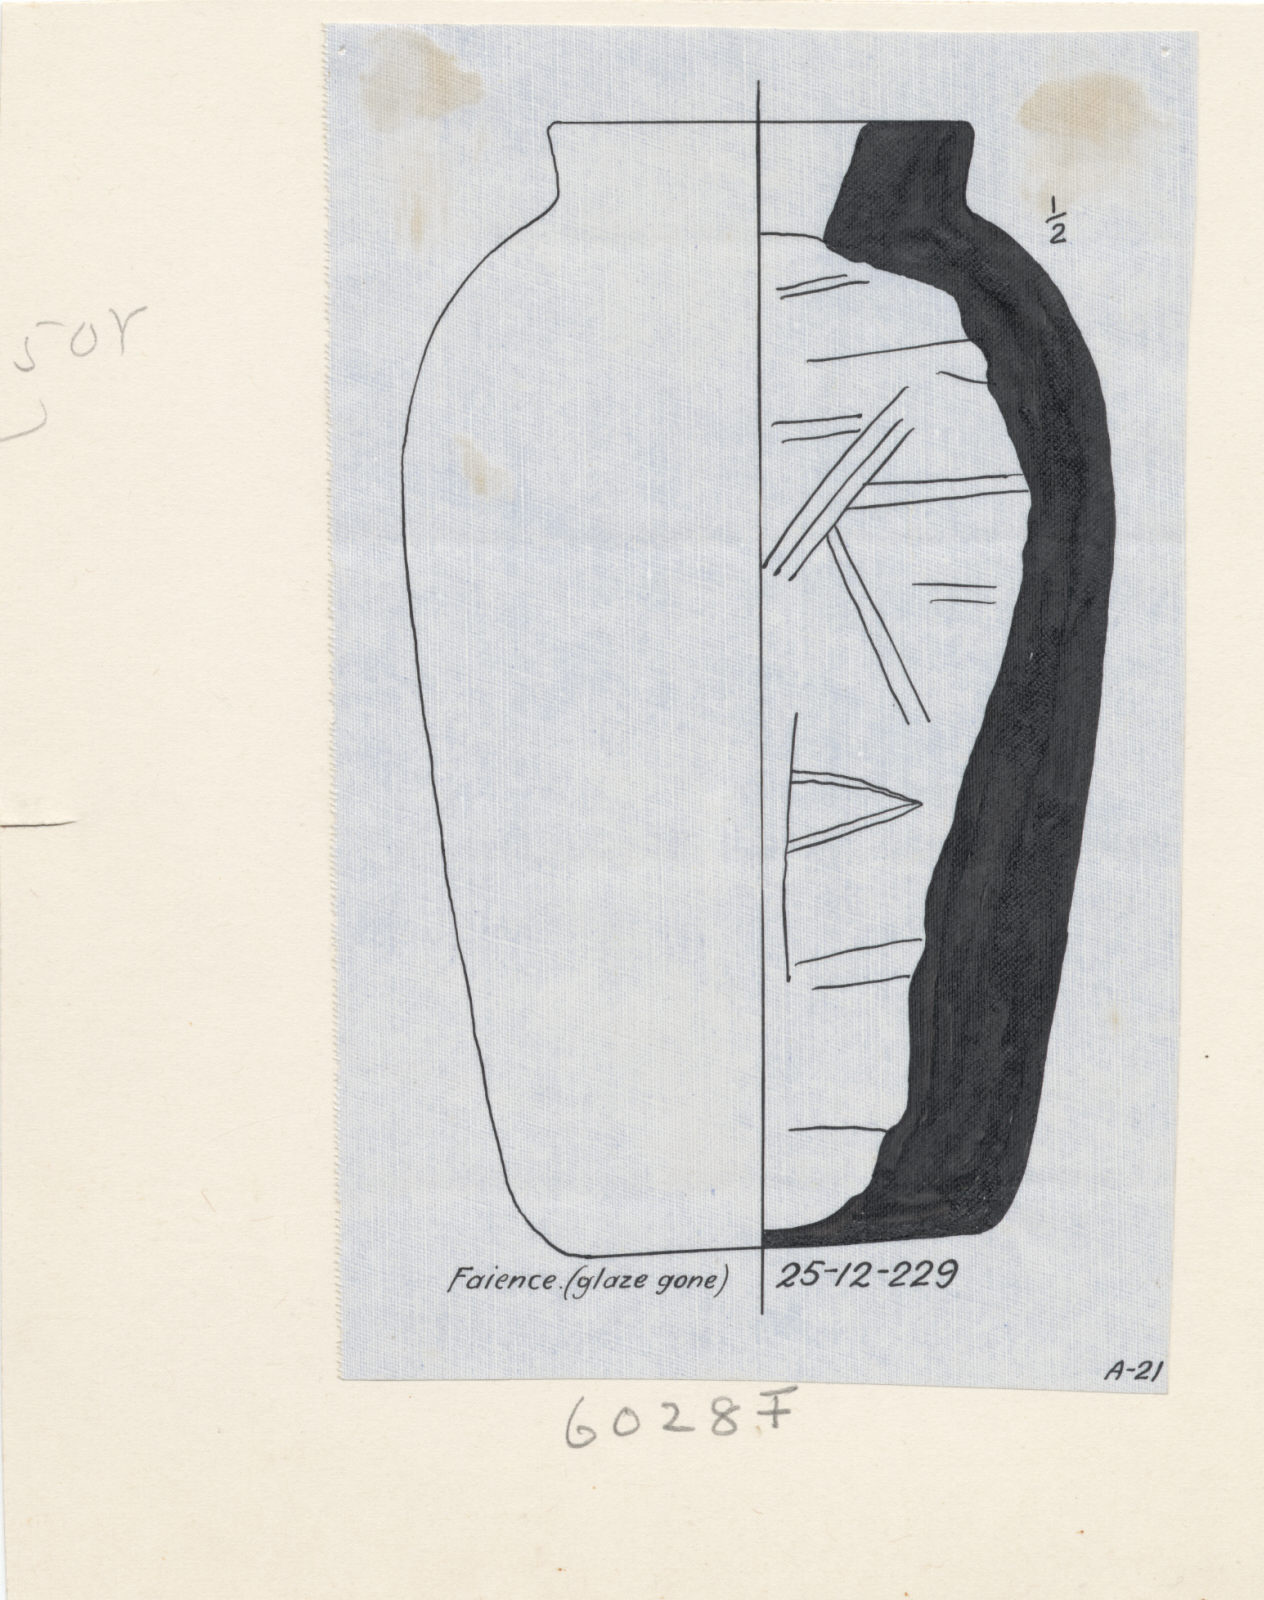 Drawings: G 6028, Shaft F: jar, faience